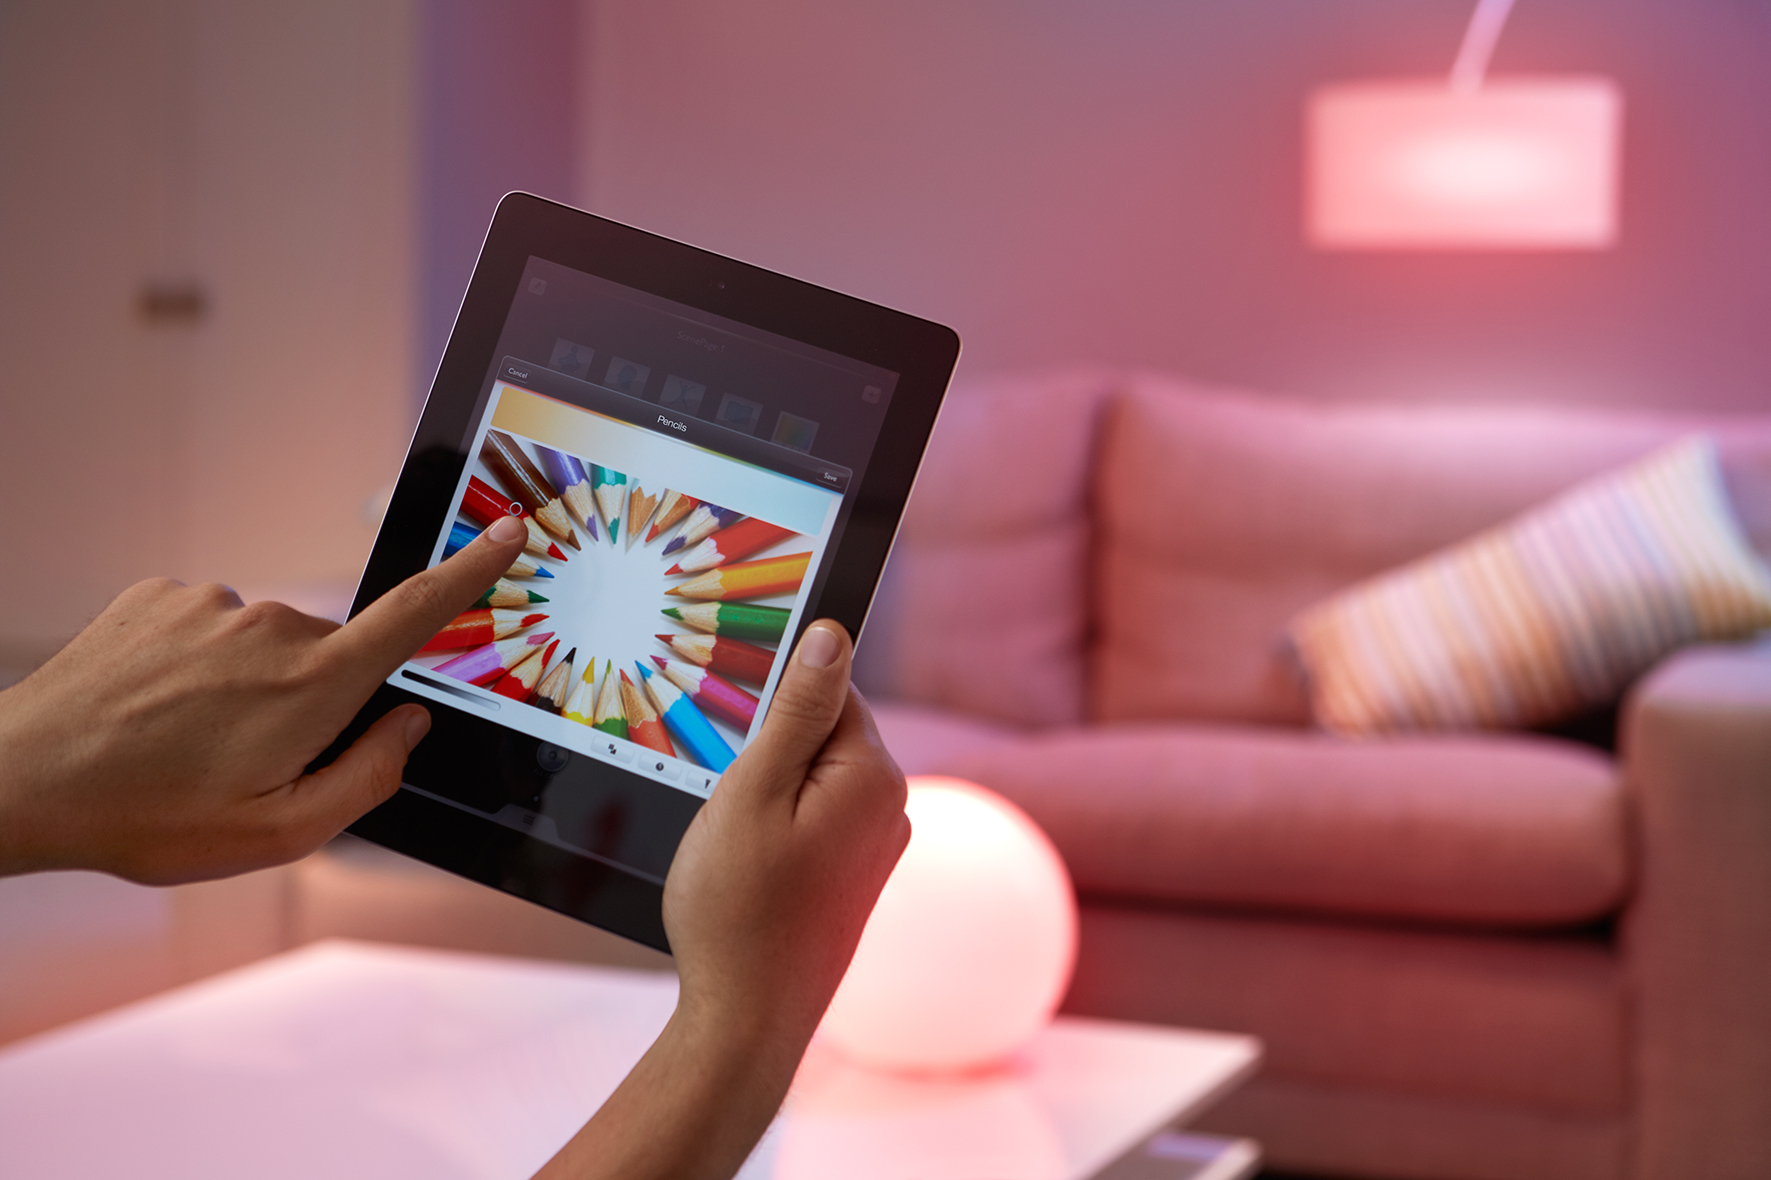 philips hue empowers endless possibilities in connected lighting launching a developer program. Black Bedroom Furniture Sets. Home Design Ideas